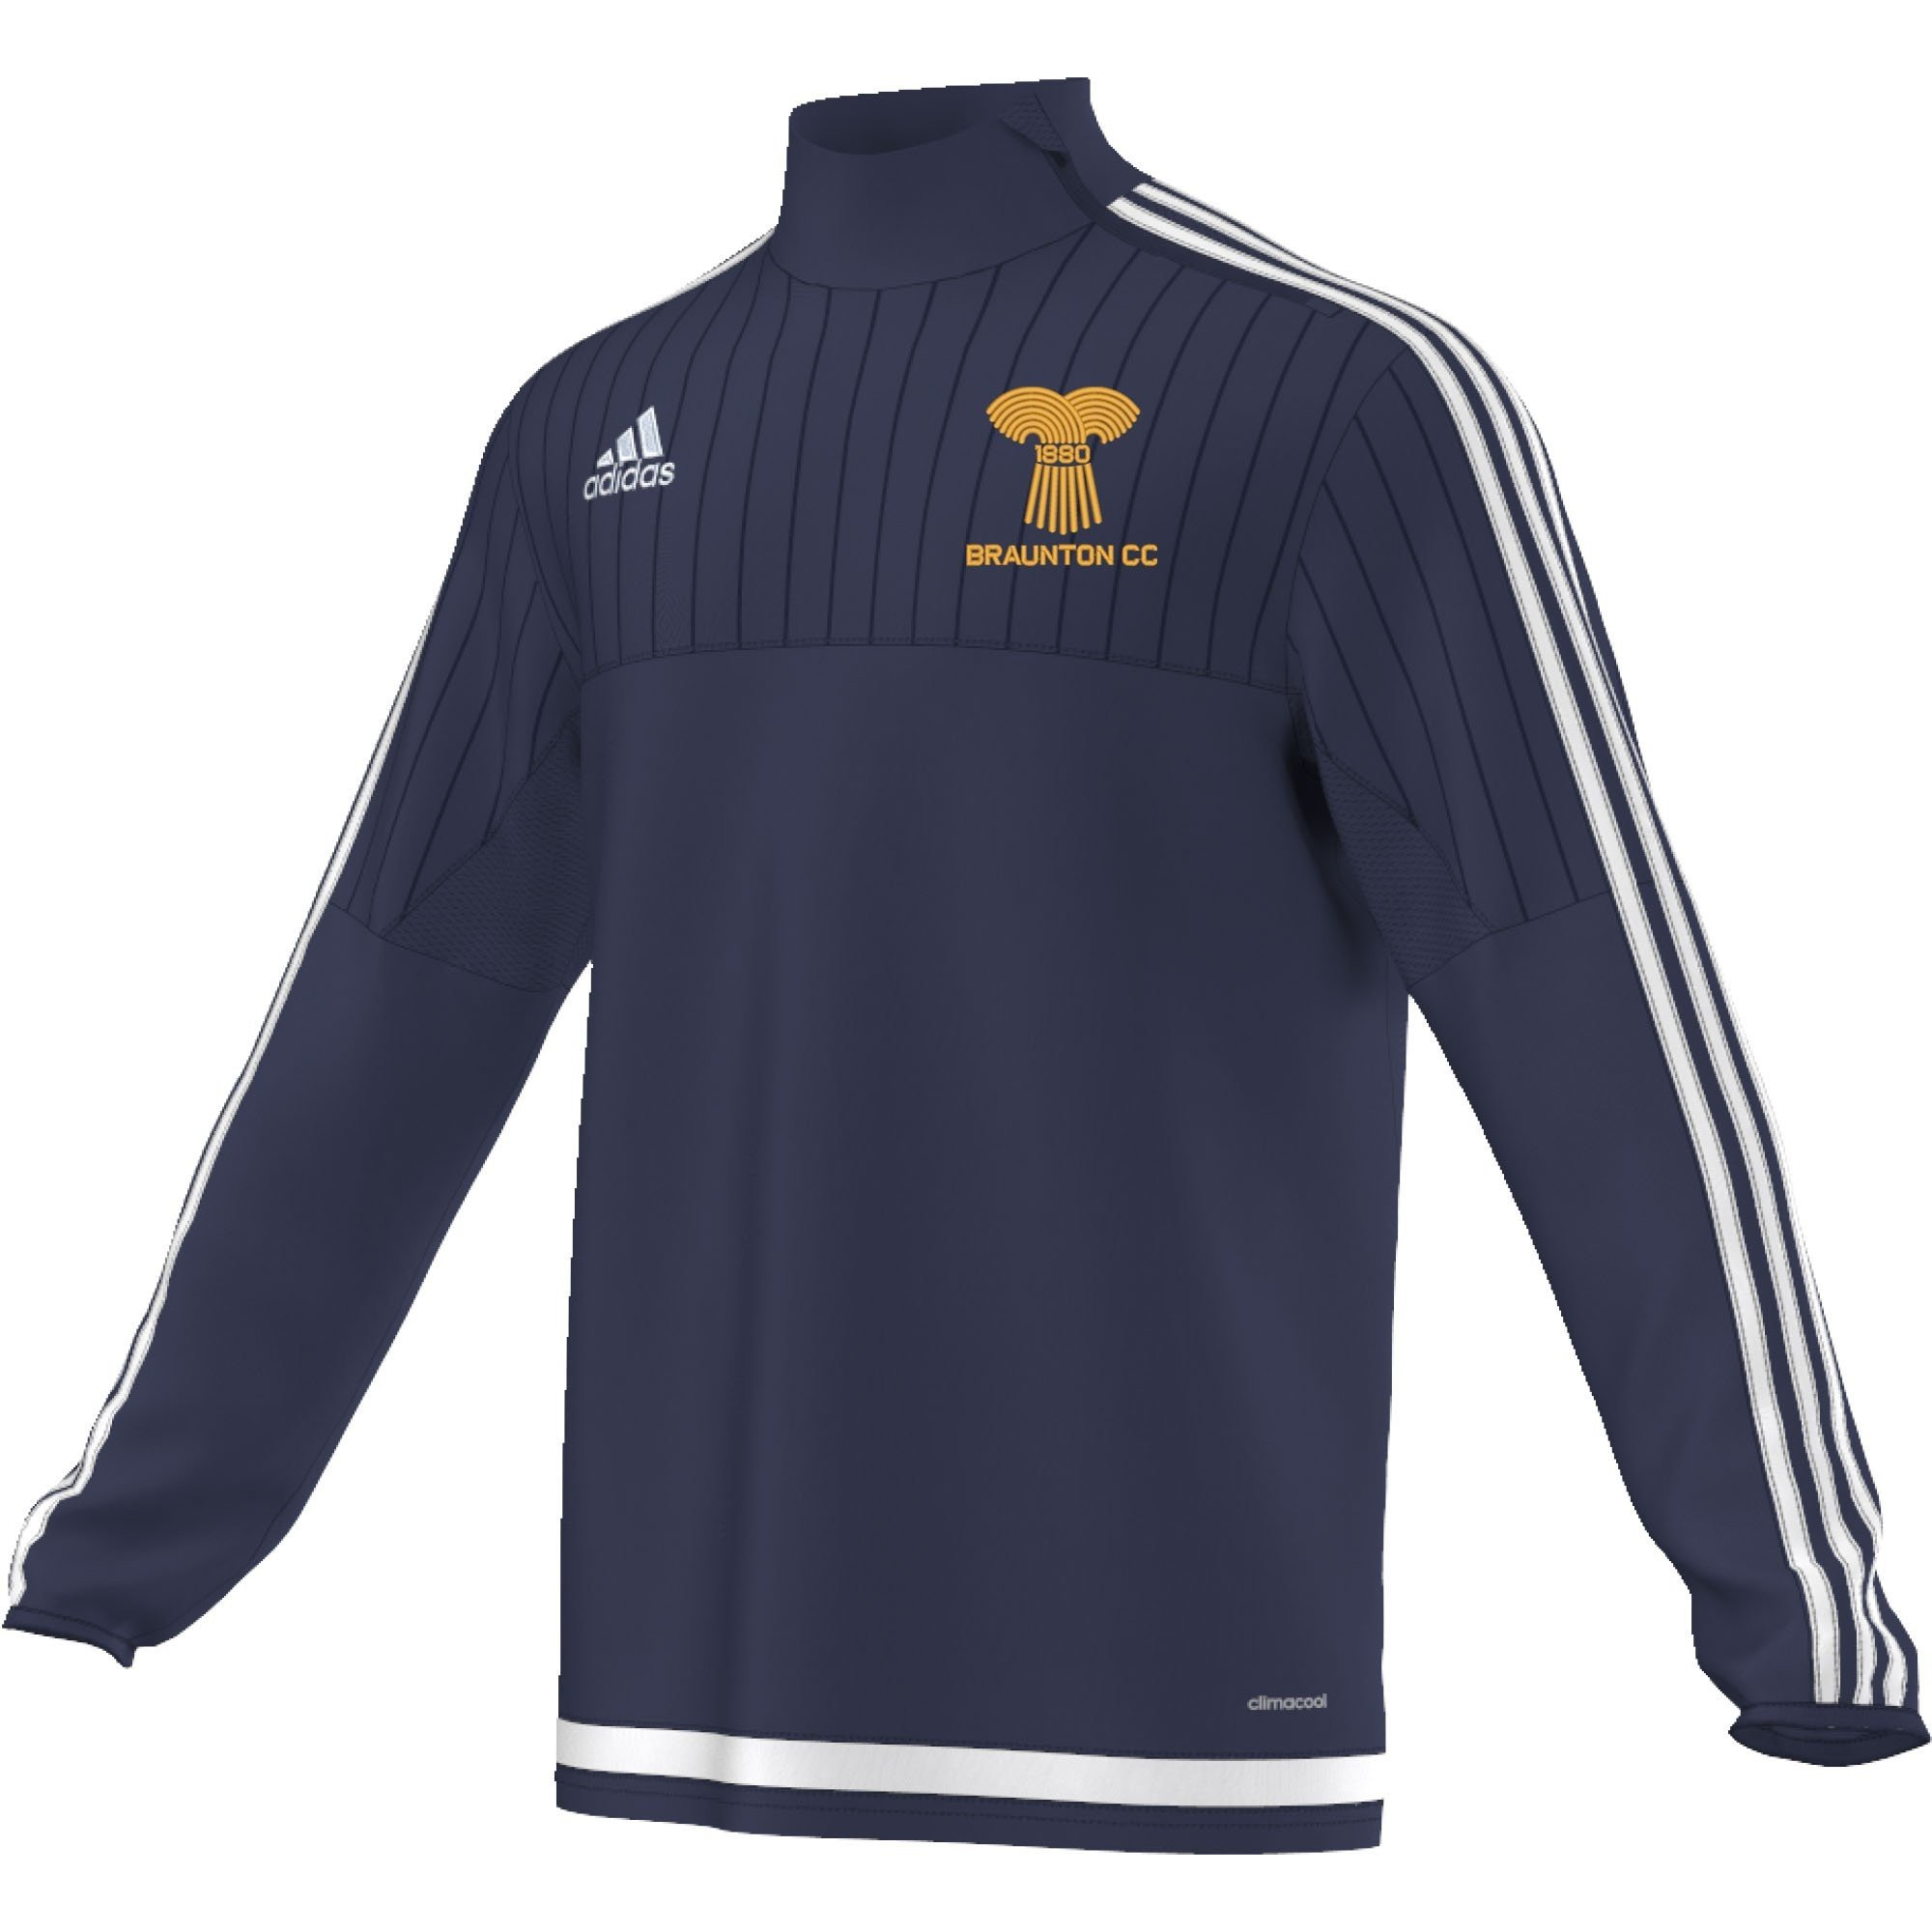 Braunton CC Adidas Navy Training Top